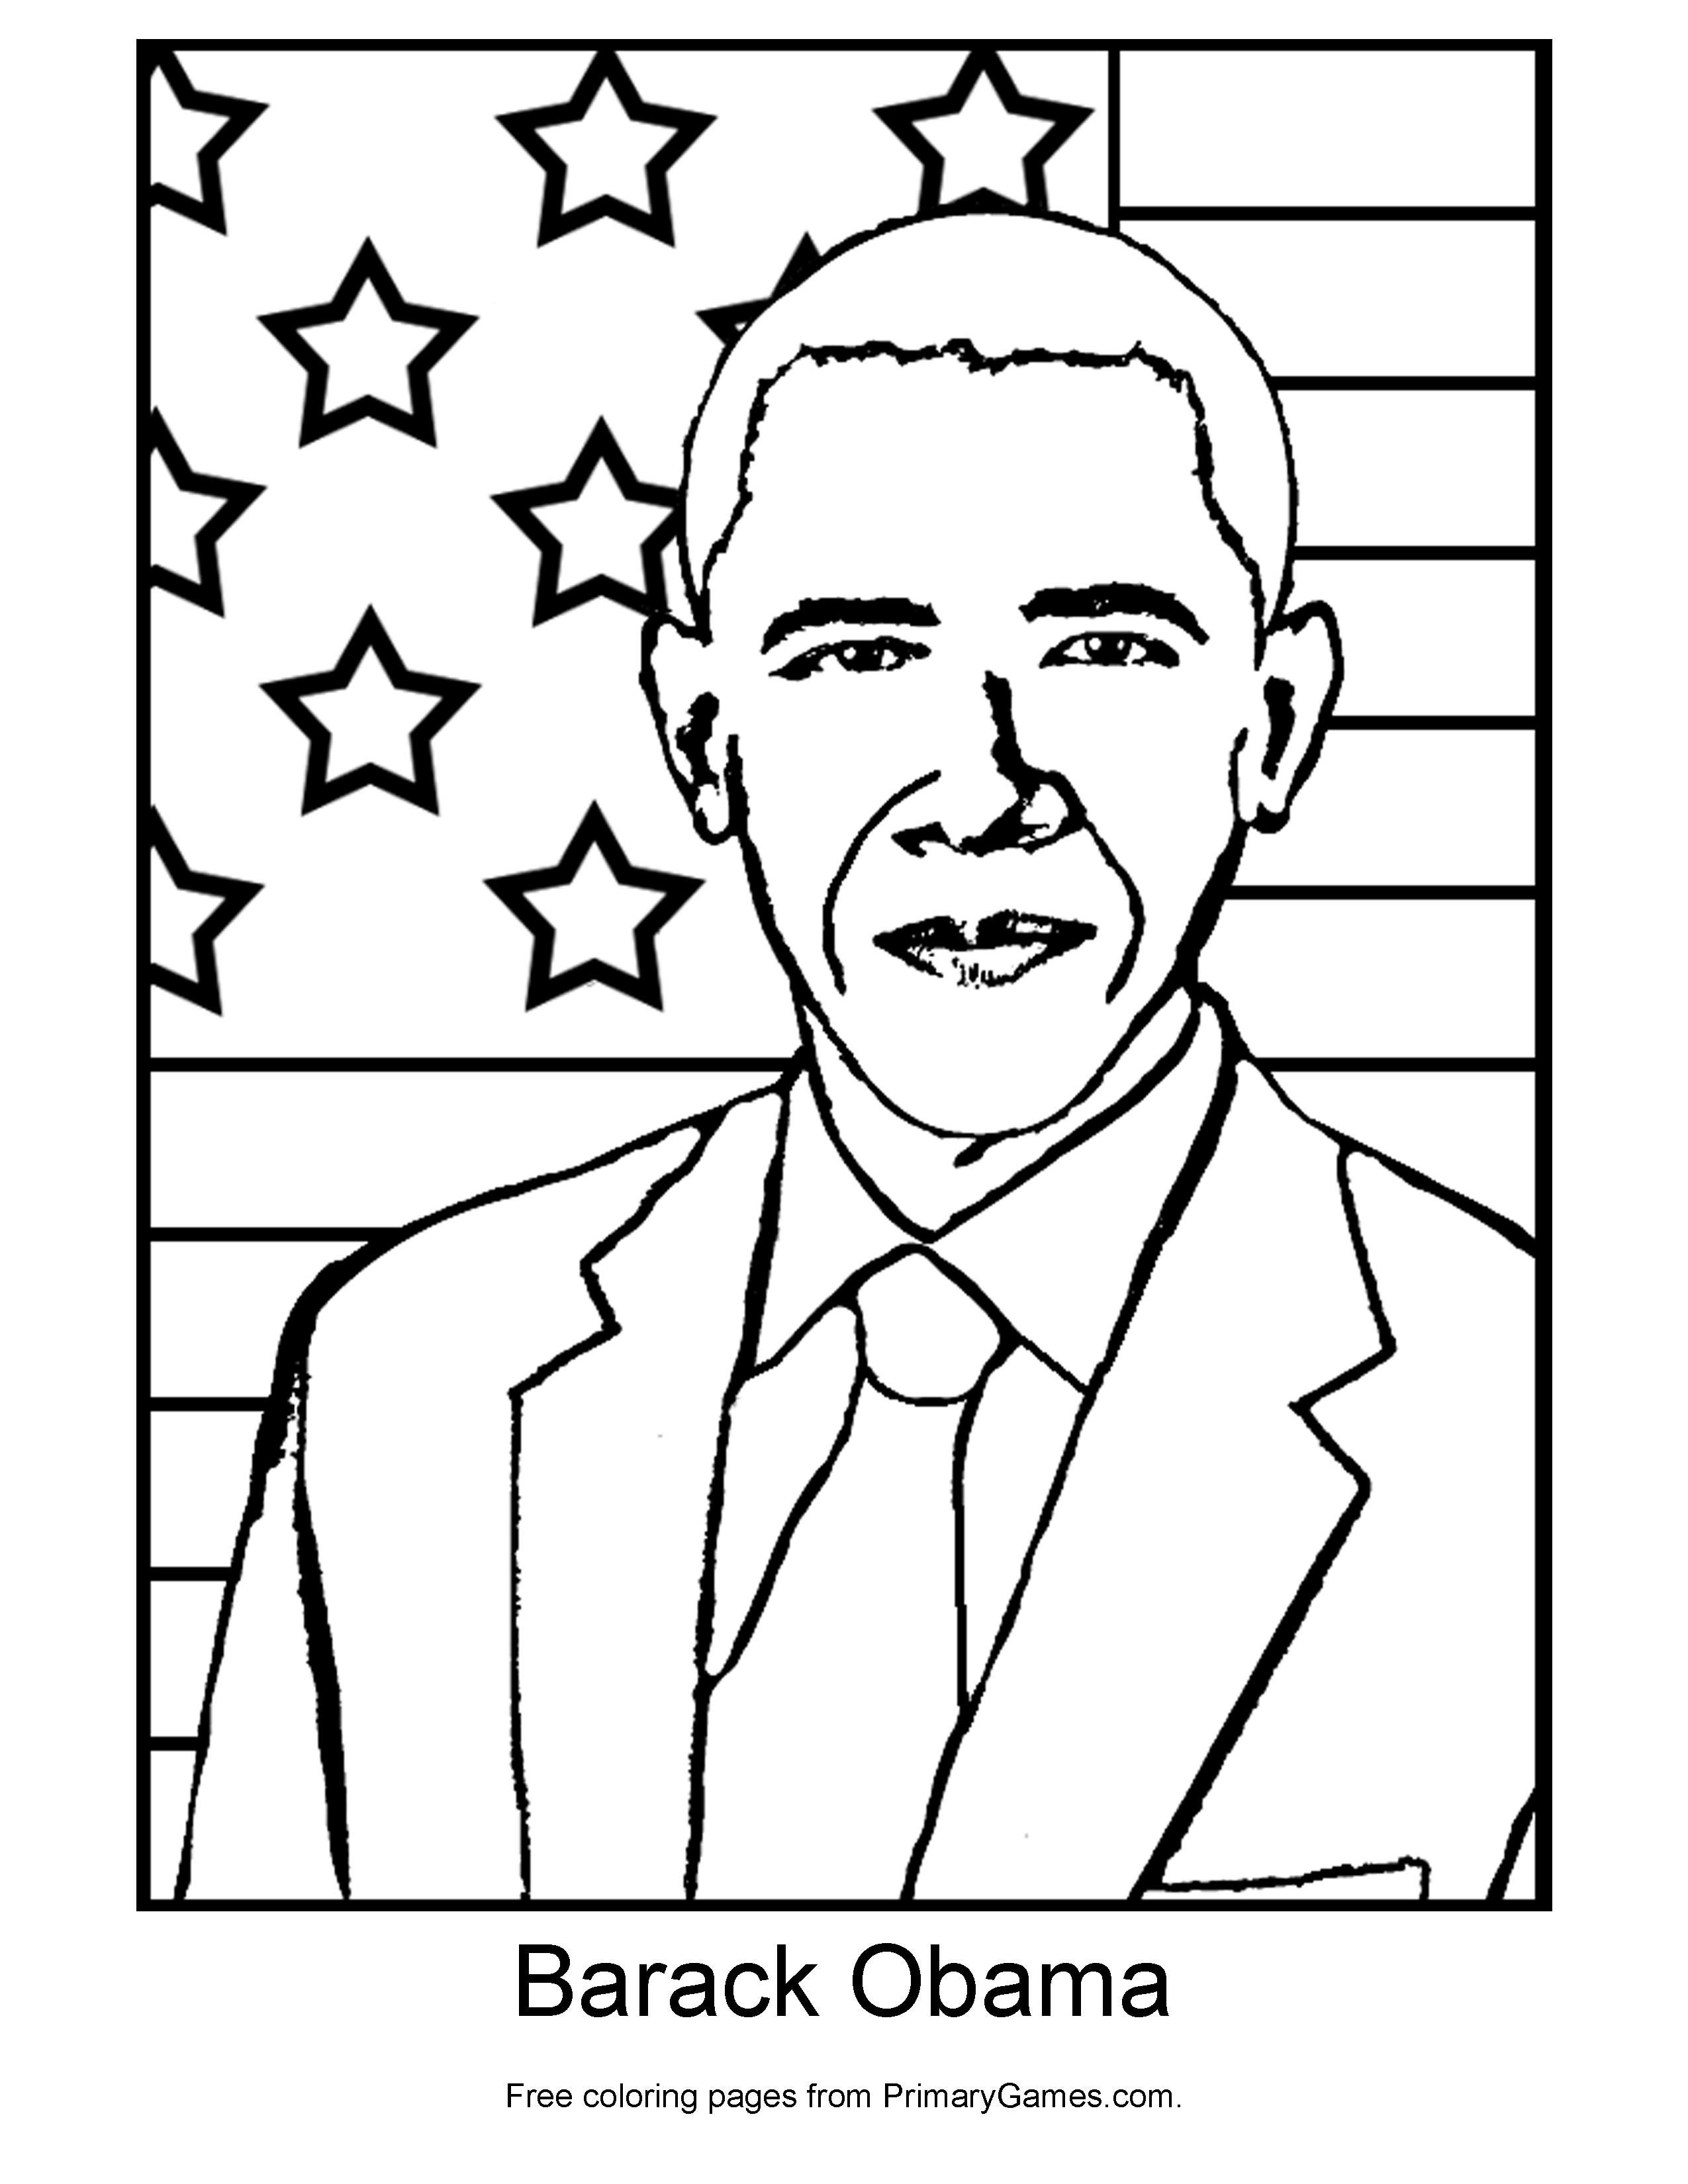 Obama Drawing Easy at GetDrawings.com | Free for personal ...